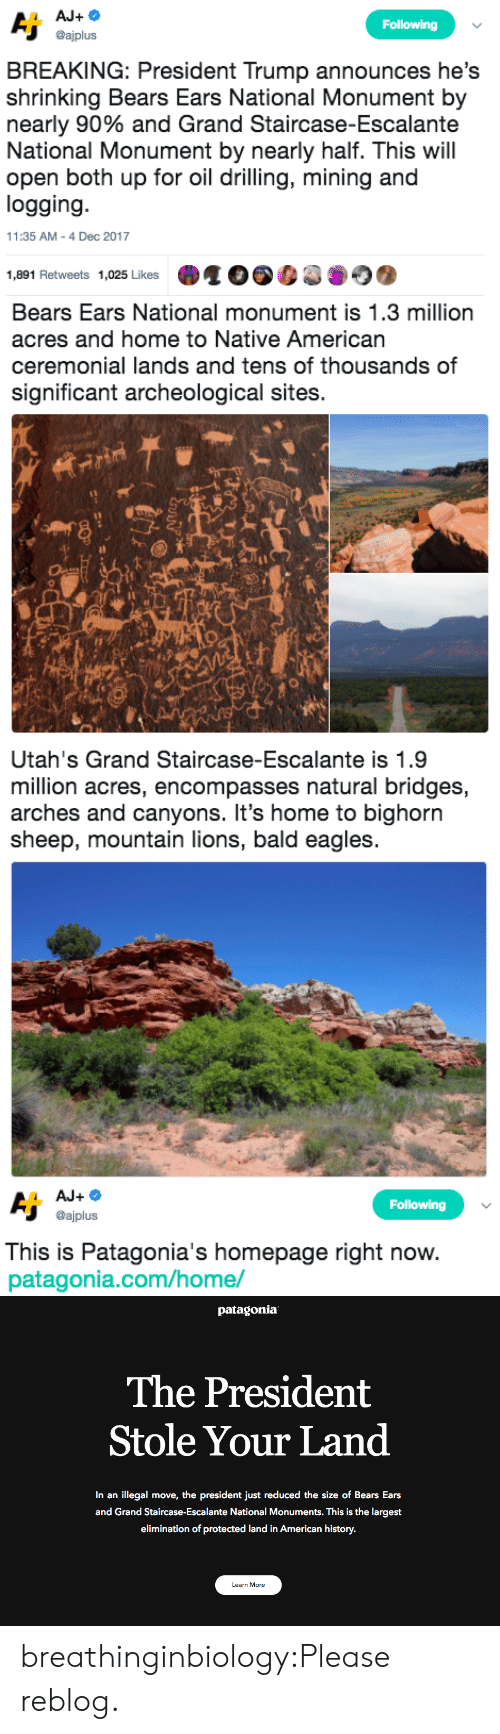 drilling: Following  @ajplus  BREAKING: President Trump announces he's  shrinking Bears Ears National Monument by  nearly 90% and Grand Staircase-Escalante  National Monument by nearly half. This will  open both up for oil drilling, mining and  logging  11:35 AM-4 Dec 2017  1,891 Retweets 1,025 Likes   Bears Ears National monument is 1.3 million  acres and home to Native American  ceremonial lands and tens of thousands of  significant archeological sites.  sh   Utah's Grand Staircase-Escalante is 1.9  million acres, encompasses natural bridges,  arches and canyons. It's home to bighorn  sheep, mountain lions, bald eagles   Following  @ajplus  This is Patagonia's homepage right now  patagonia.com/home/   patagonia  The President  Stole Your Land  In an illegal move, the president just reduced the size of Bears Ears  and Grand Staircase-Escalante National Monuments. This is the largest  elimination of protected land in American history.  Learn More breathinginbiology:Please reblog.